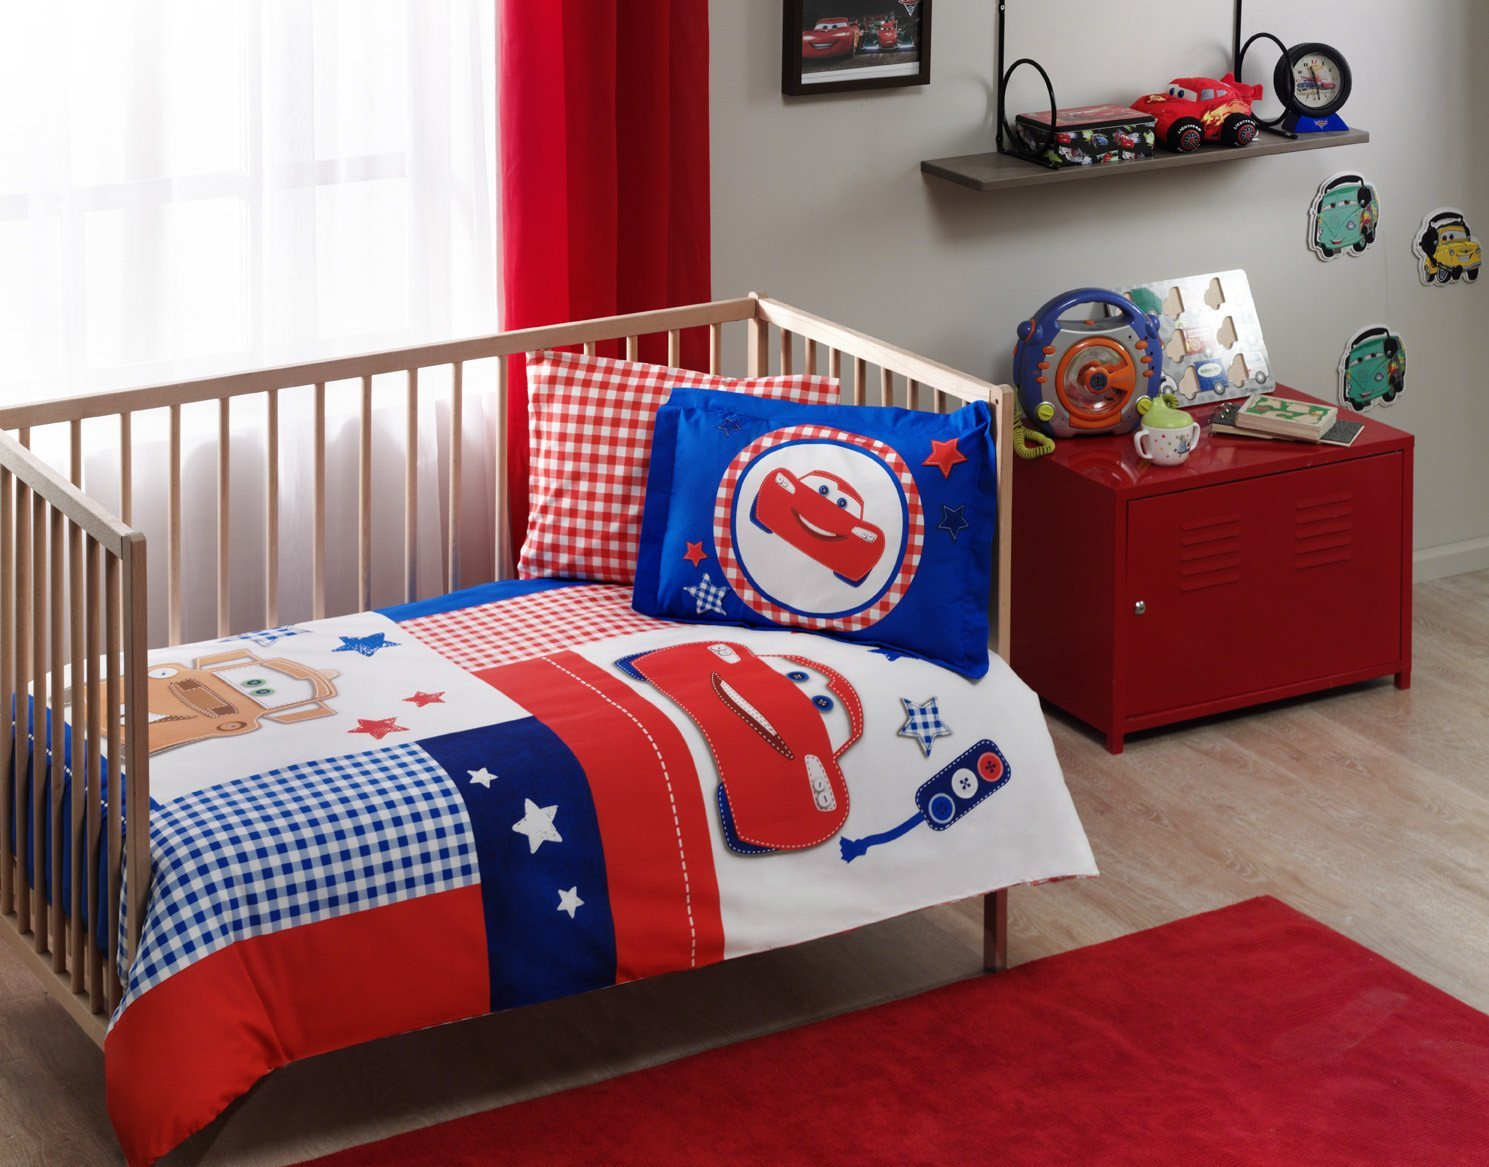 LaModaHome 4 Pcs Luxury Soft Colored Licensed Baby Quilt Cover Set 100% Cotton Red Blue White Brown Cars Marvel Lightning Mcqueen Baby Bed with Flat Sheet